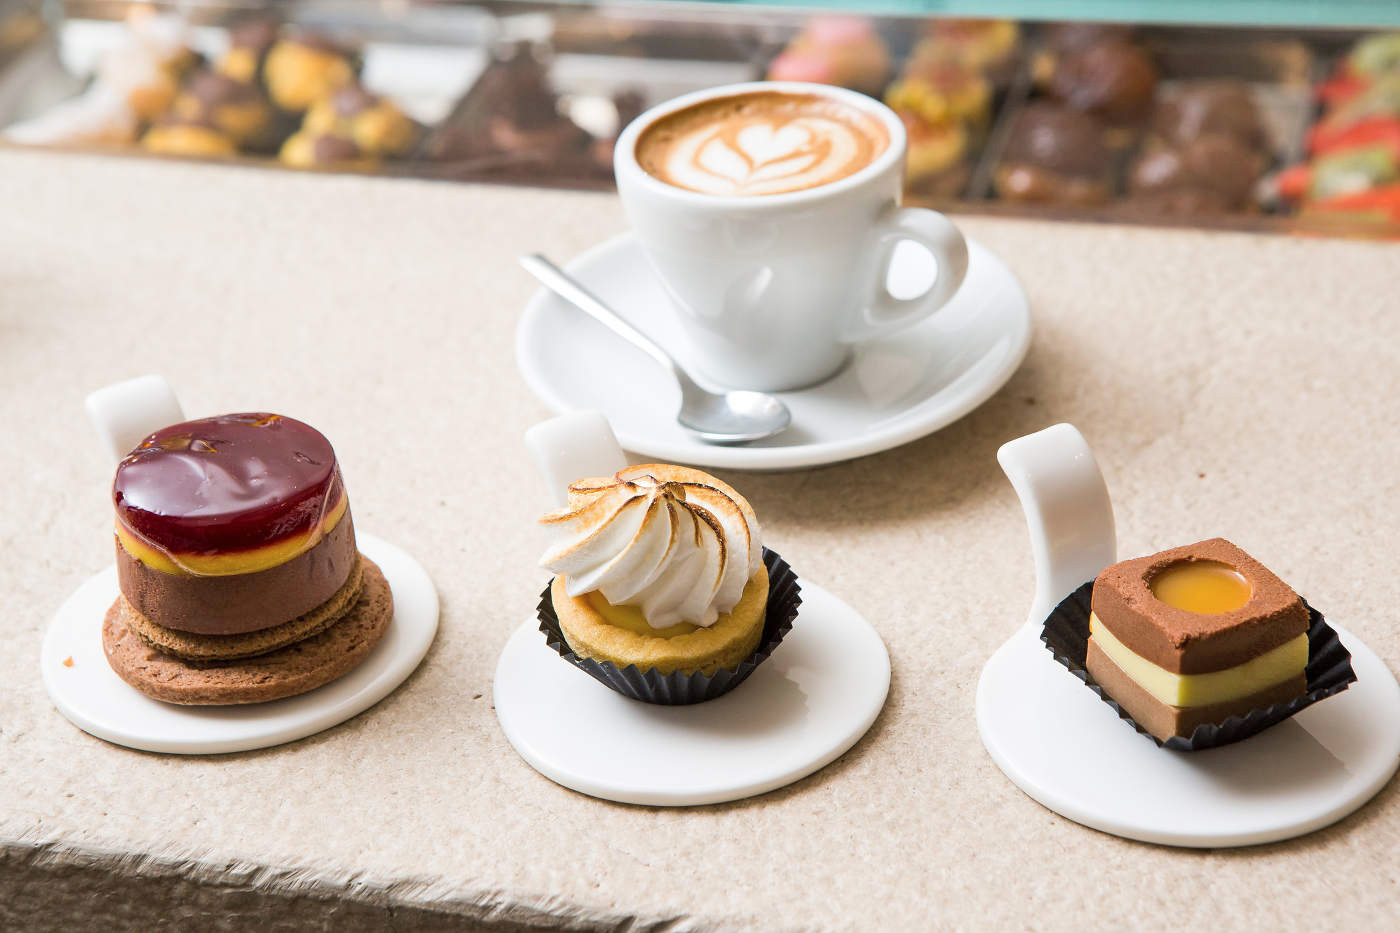 Where to Eat: Roscioli Caffè & Pasticceria